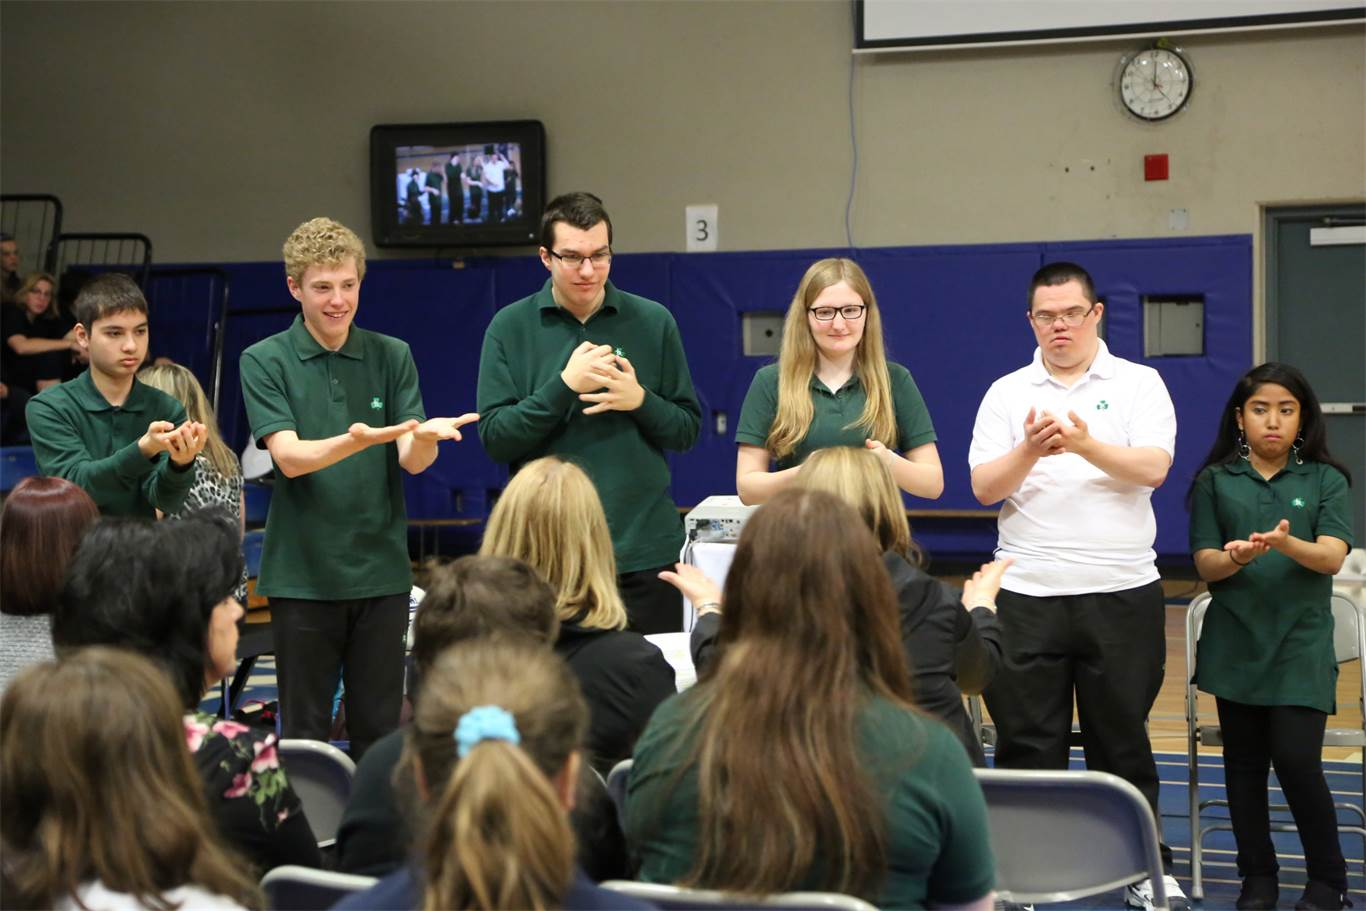 Sign language interpreters from Bishop Ryan Catholic Secondary School sign along with BR Jr. Xpression Choir. Photo by Jenna Madalena.